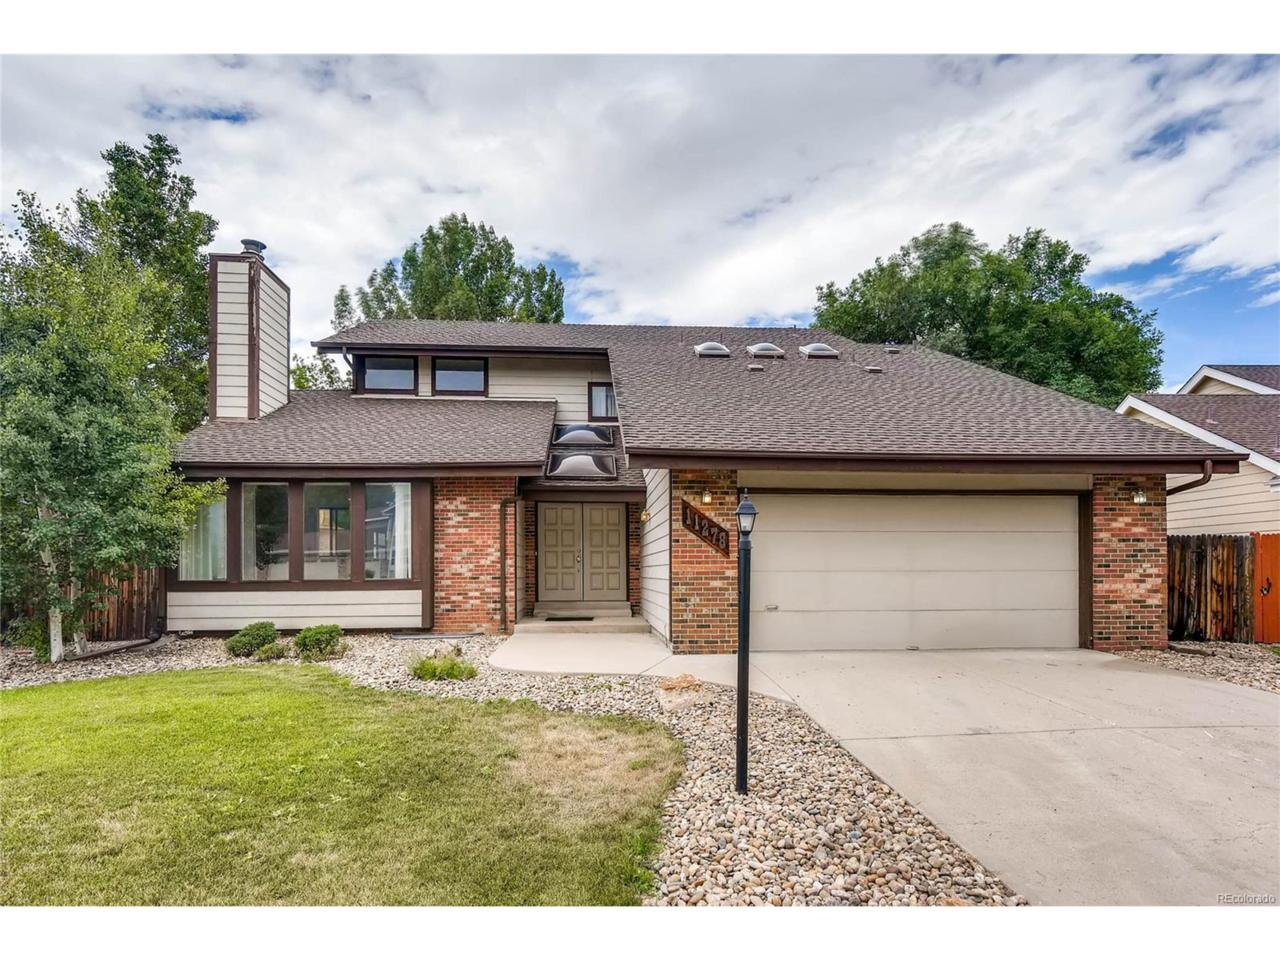 11278 Ranch Place, Westminster, CO 80234 (MLS #7359239) :: 8z Real Estate